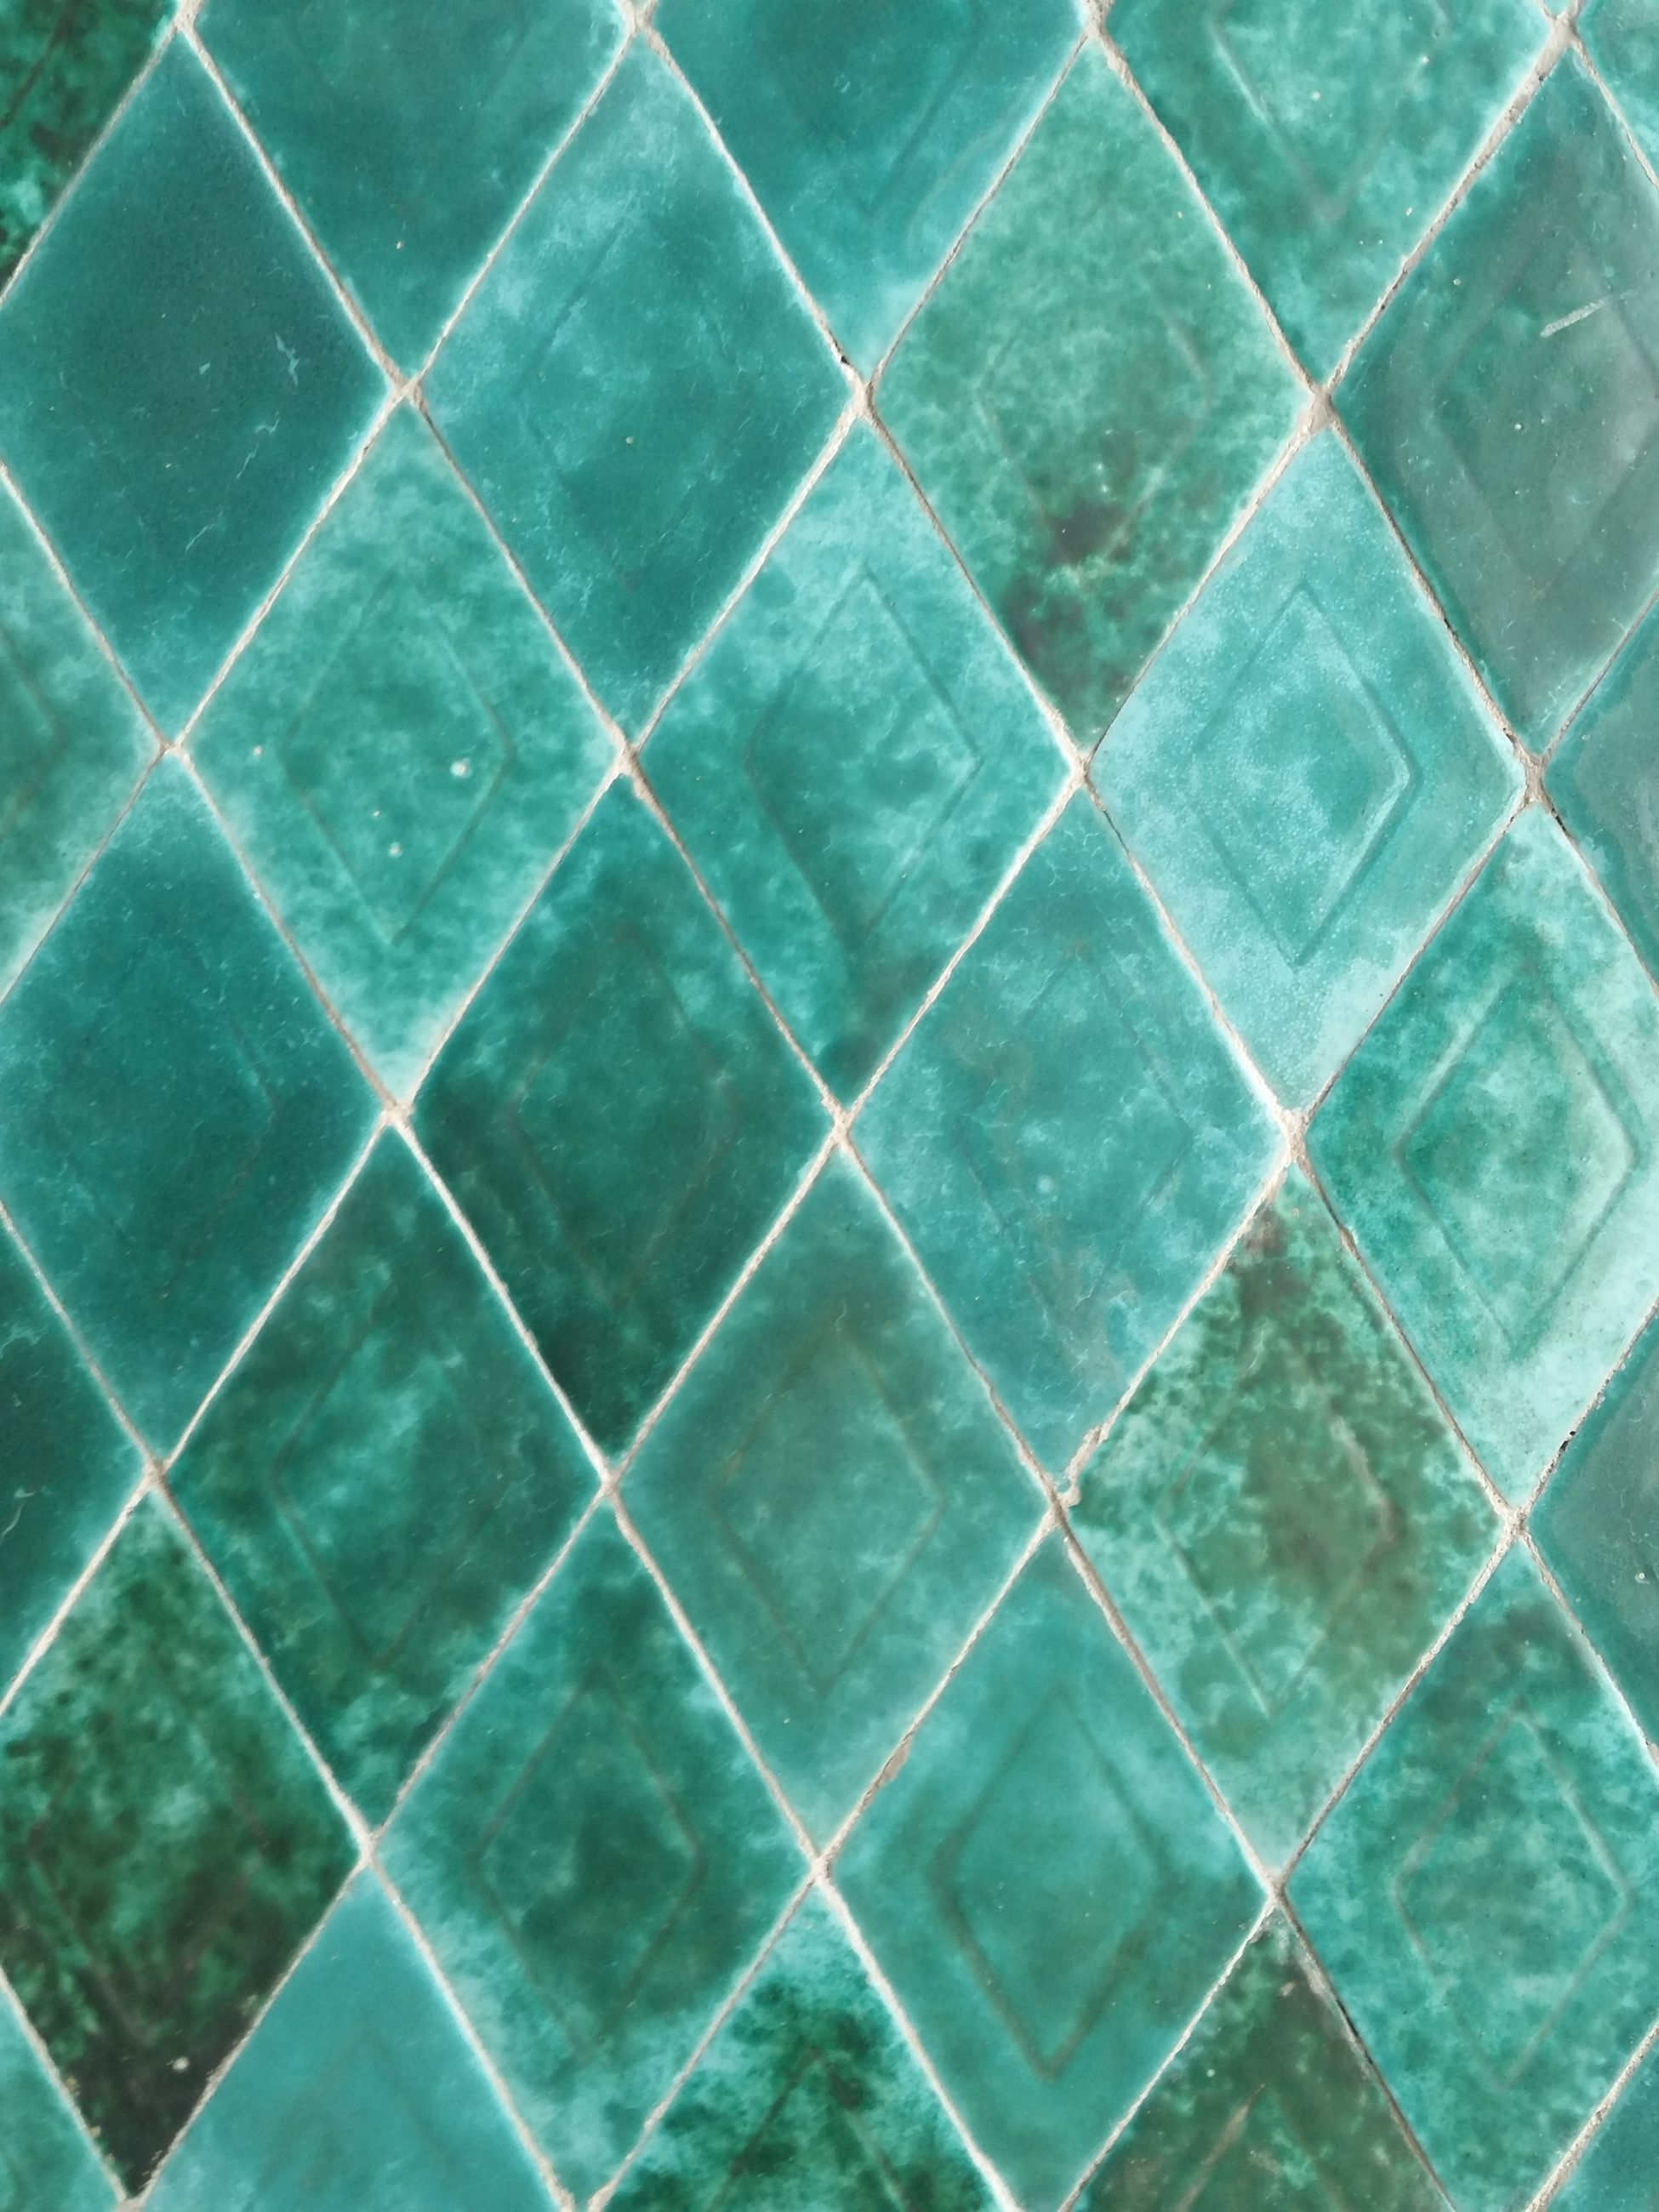 full frame, backgrounds, pattern, no people, close-up, textured, tile, design, shape, abstract, grid, green color, indoors, turquoise colored, geometric shape, flooring, textile, blue, repetition, nature, textured effect, swimming pool